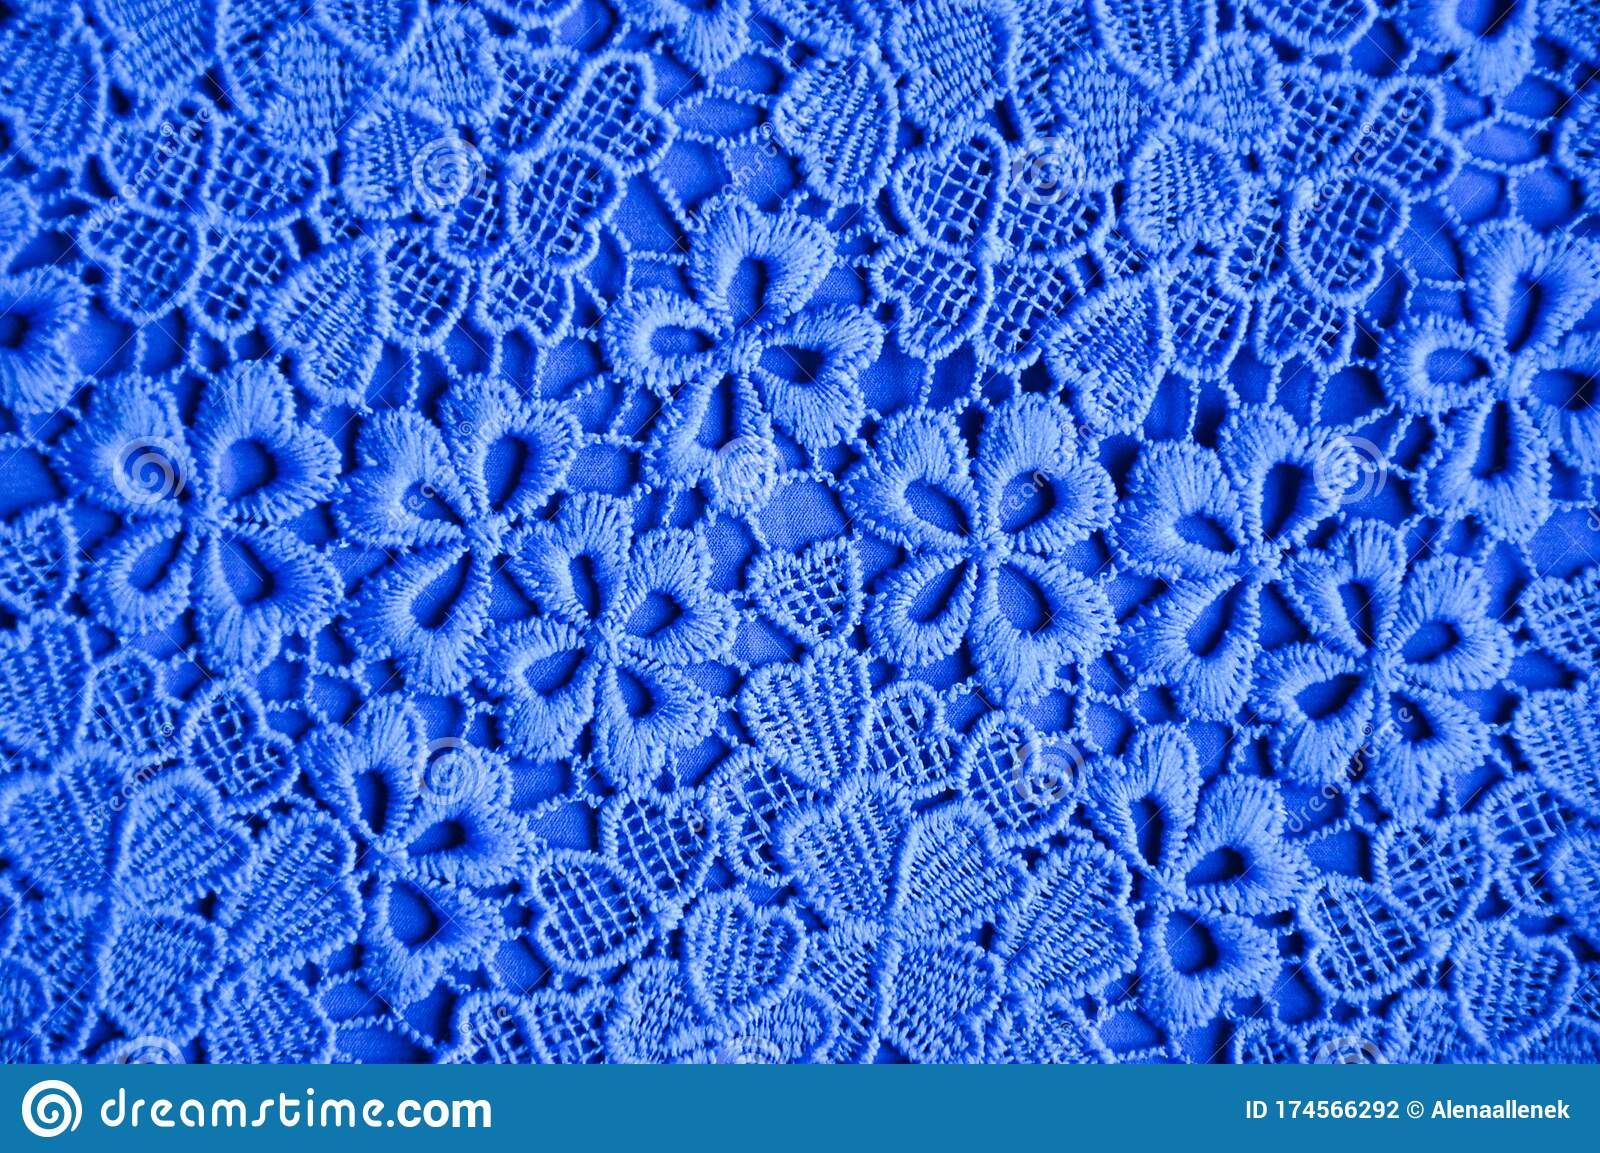 The Texture Of The Fabric Blue Openwork Pattern Background Stock Photo Image Of Openwork Texture 174566292